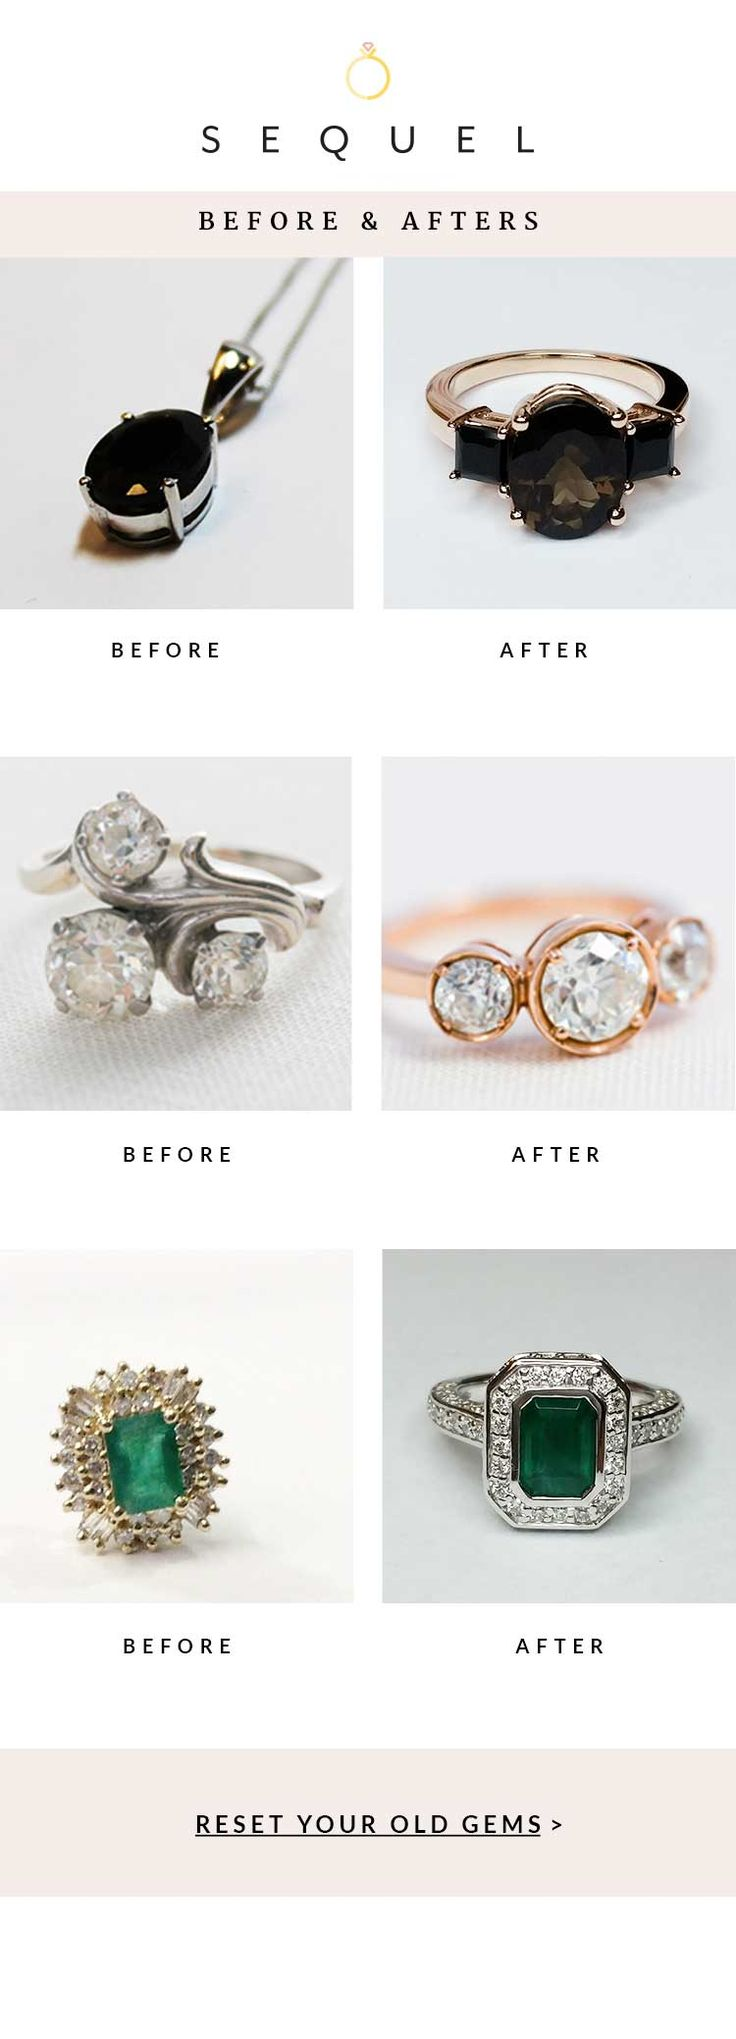 As seen in The New York Times, Bridal Guide, and The Boston Globe. With over 50,000 ways to customize, Sequel will work with you to transform your old gems into entirely new pieces.